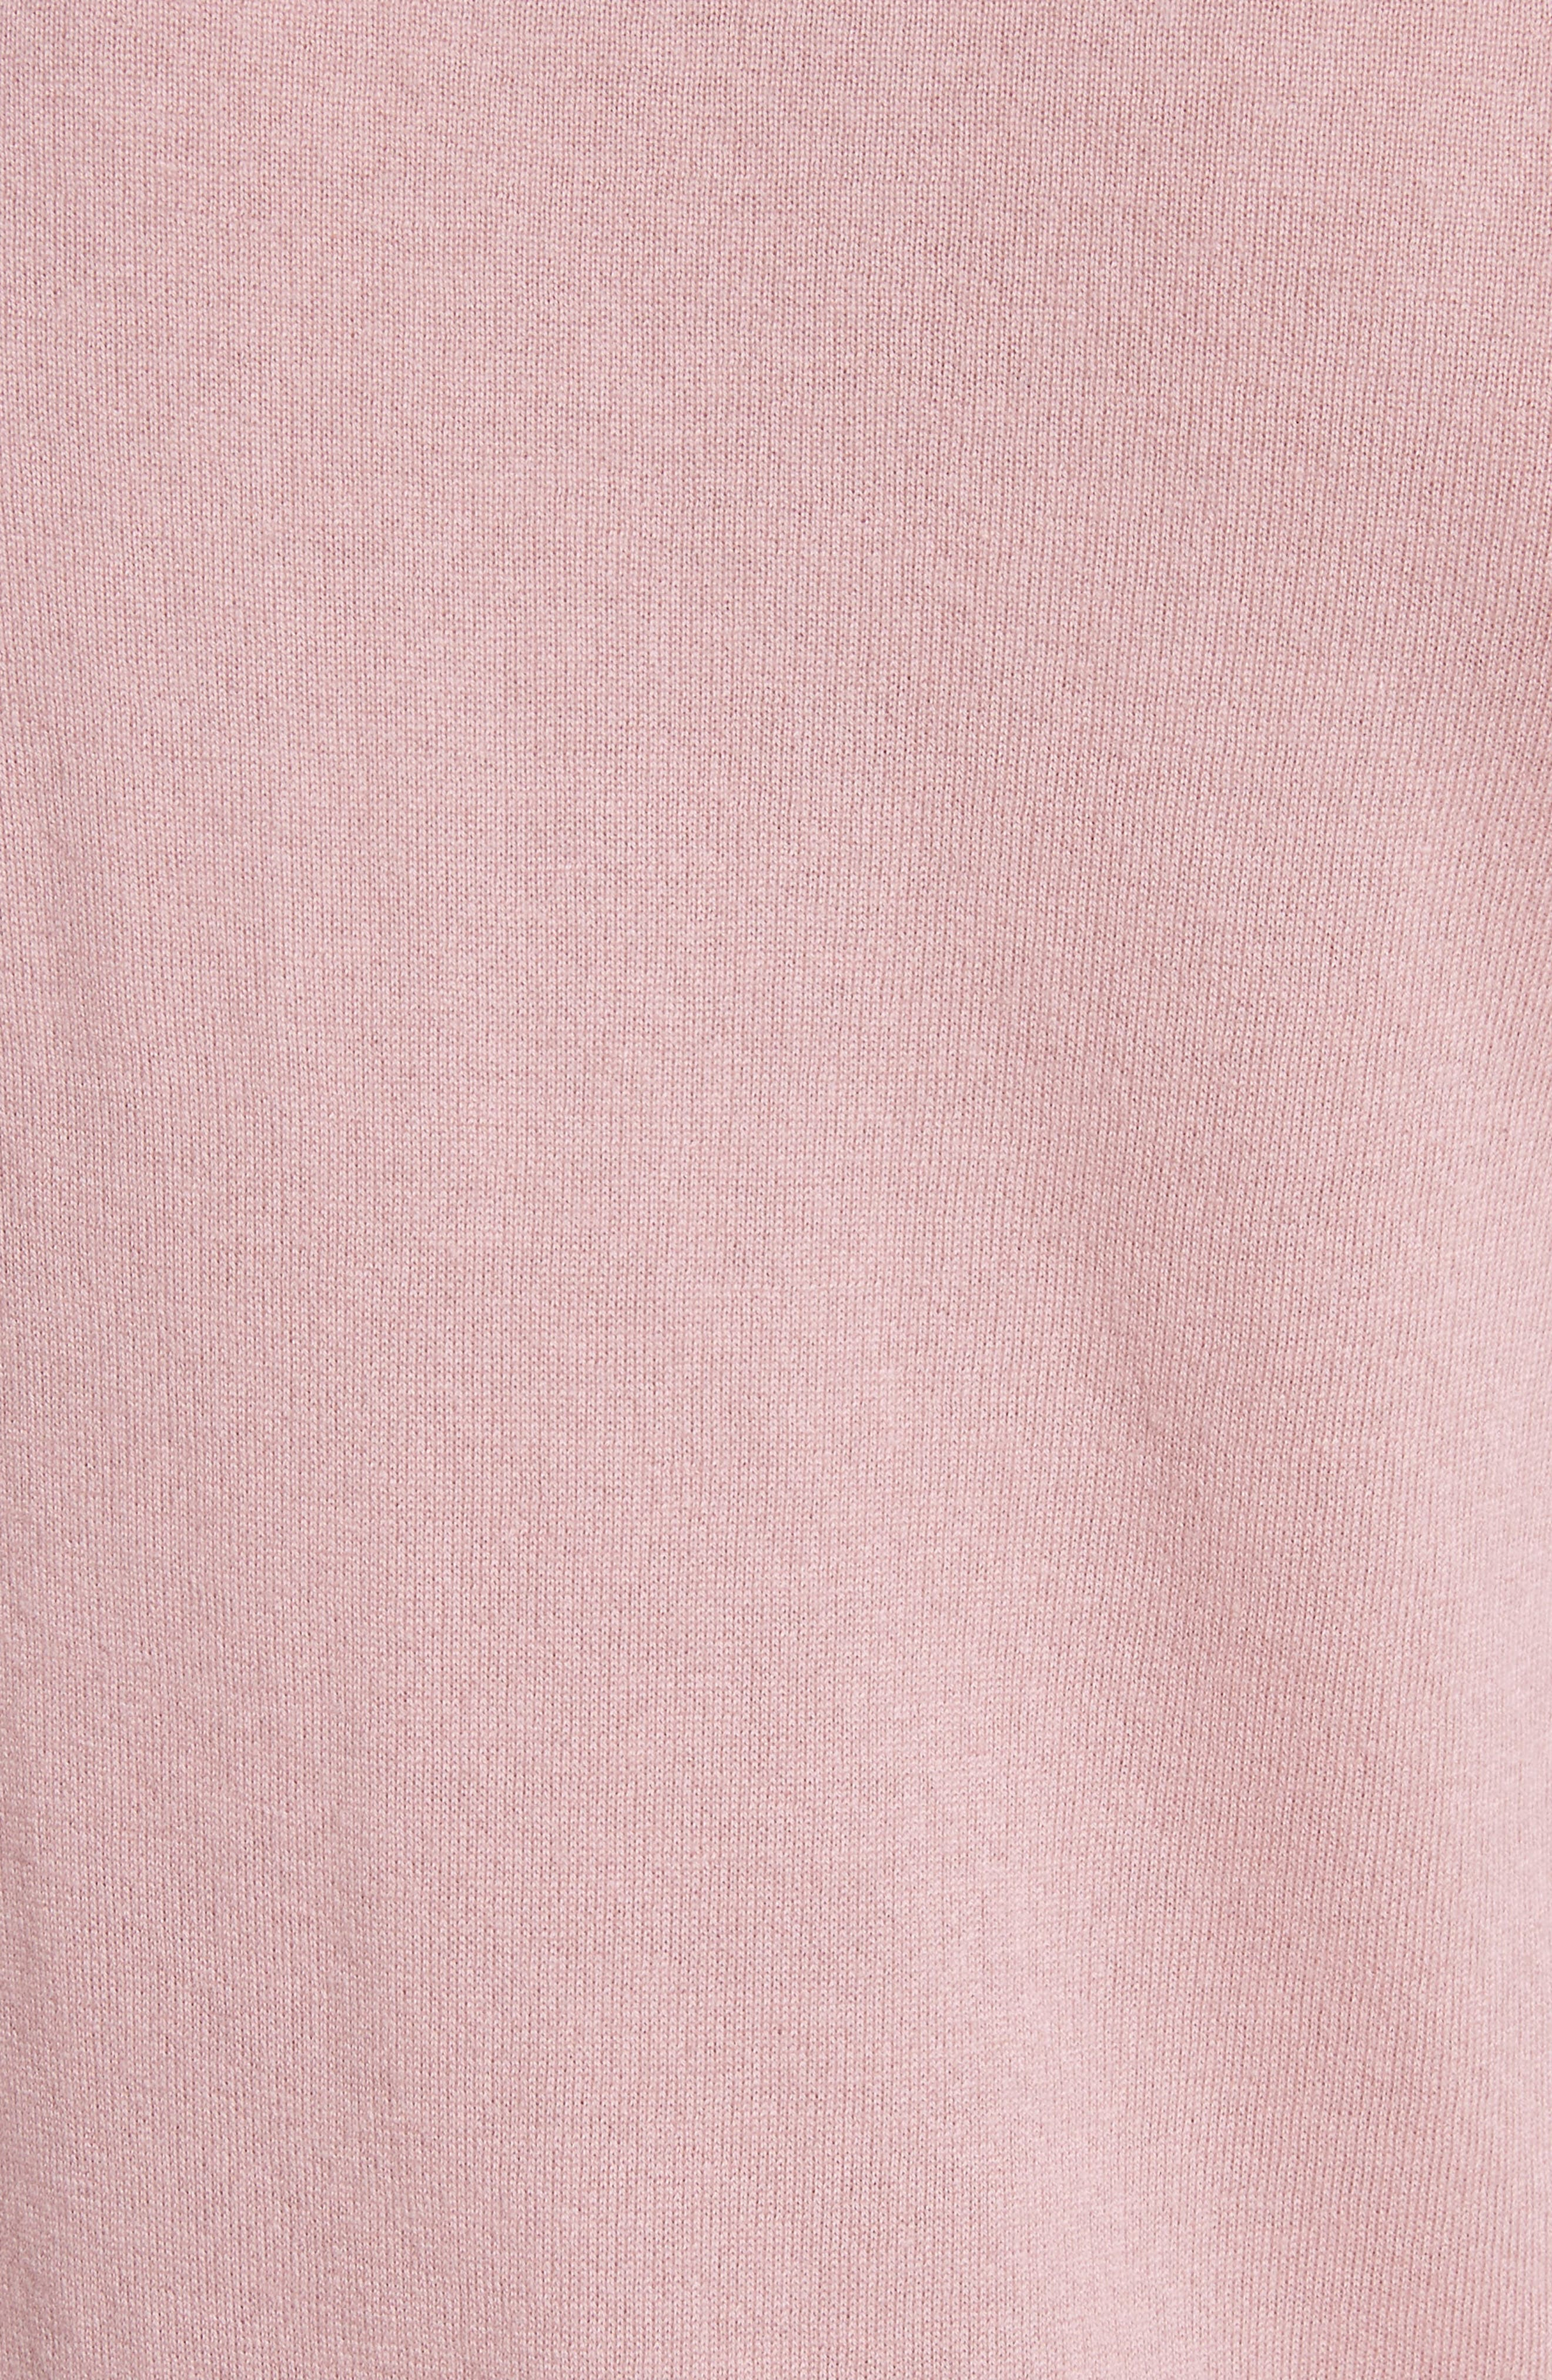 Cashmere Long Sleeve T-Shirt,                             Alternate thumbnail 5, color,                             Pink